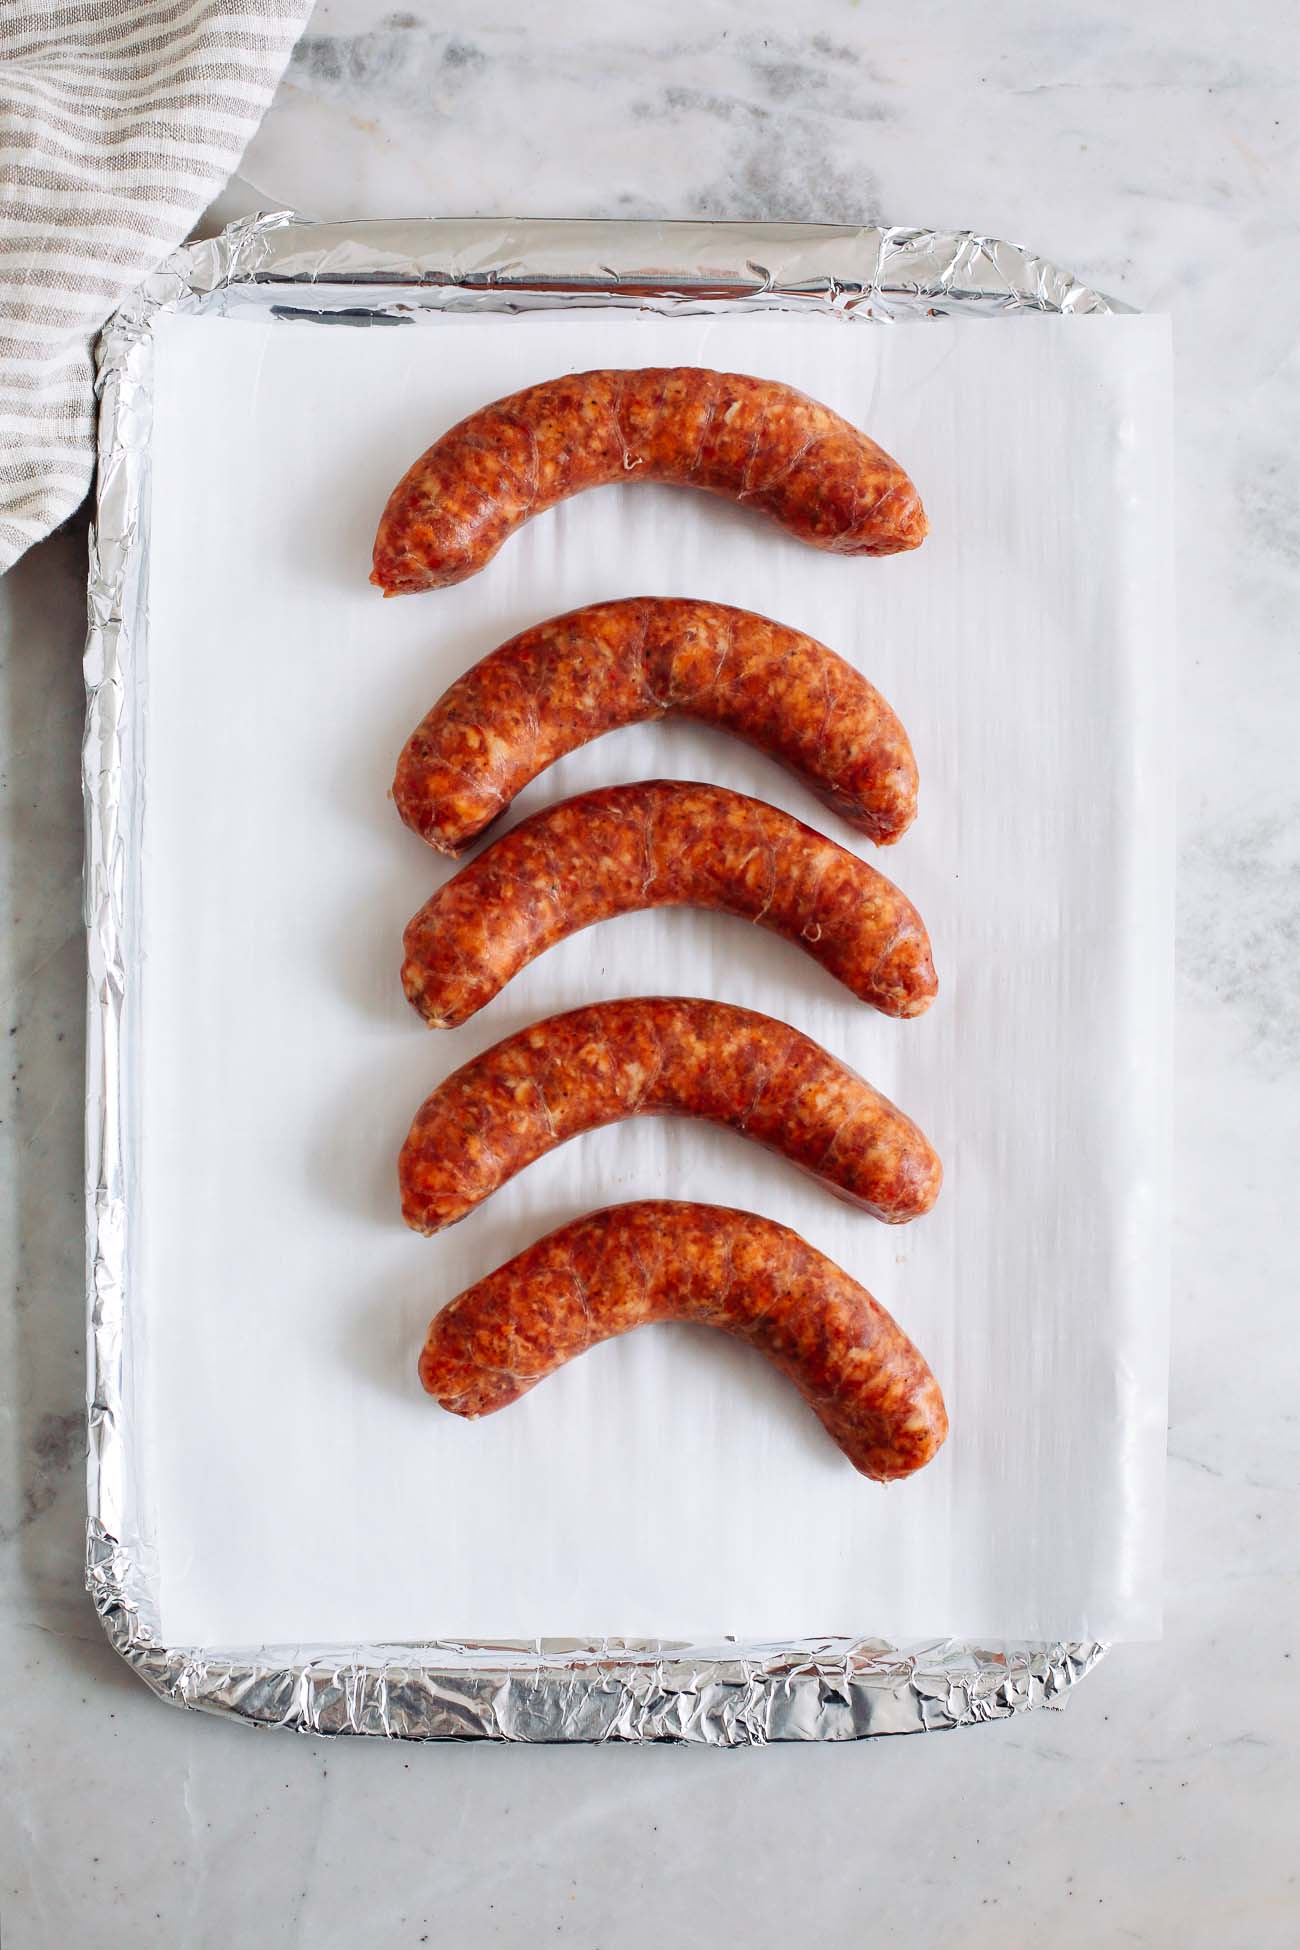 A lined sheet pan with sausage on it.